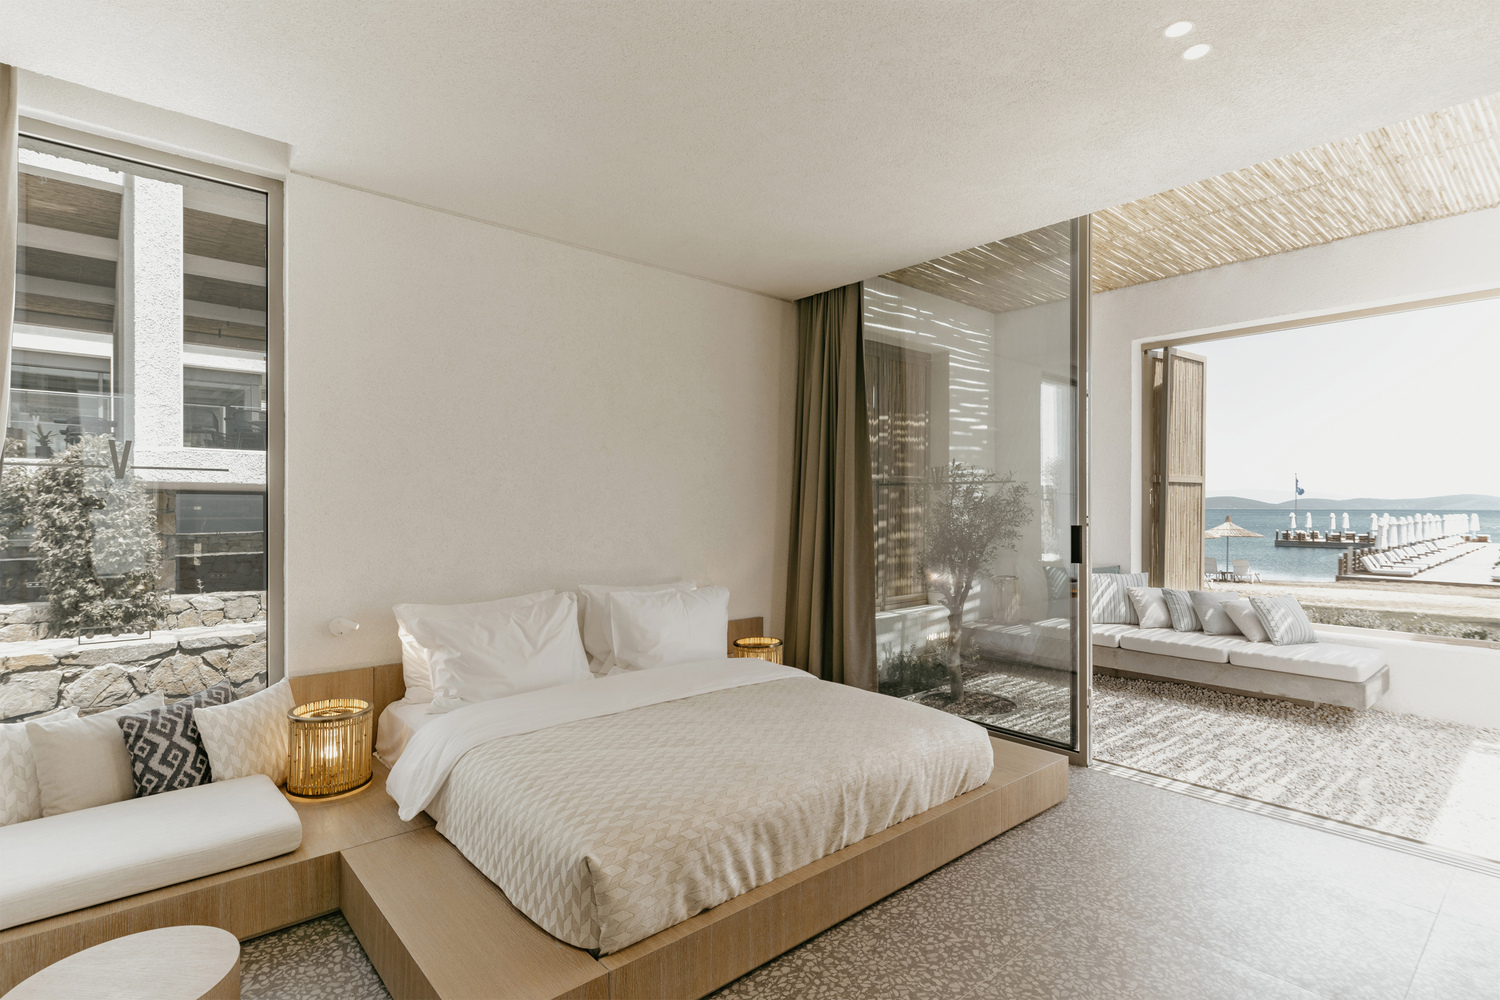 Bodrum's Voyage Torba Hotel is a calm counterpoint to Turkey's mega resorts